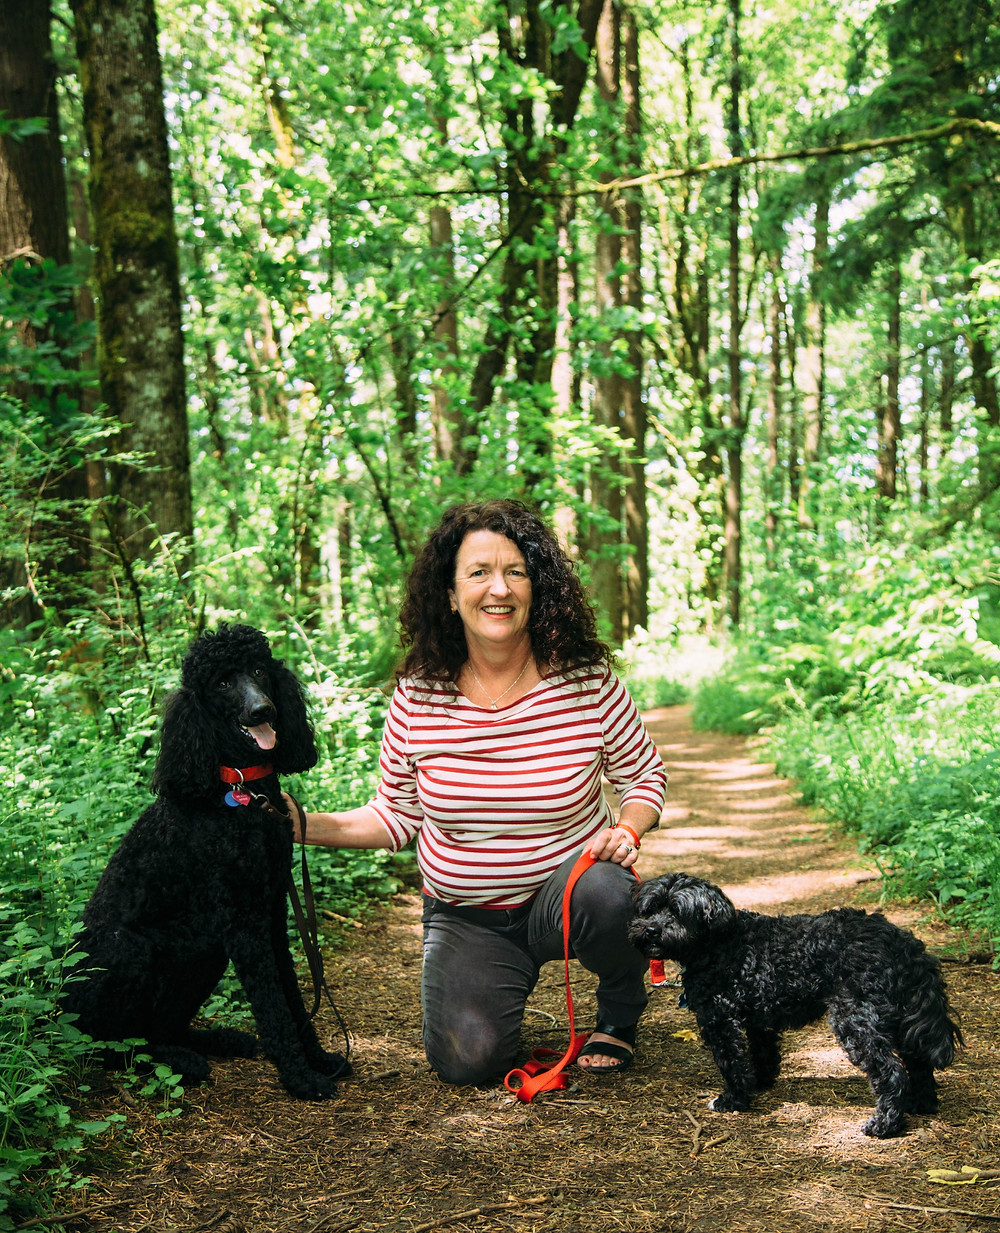 Kate and her two dogs are on the forest trail